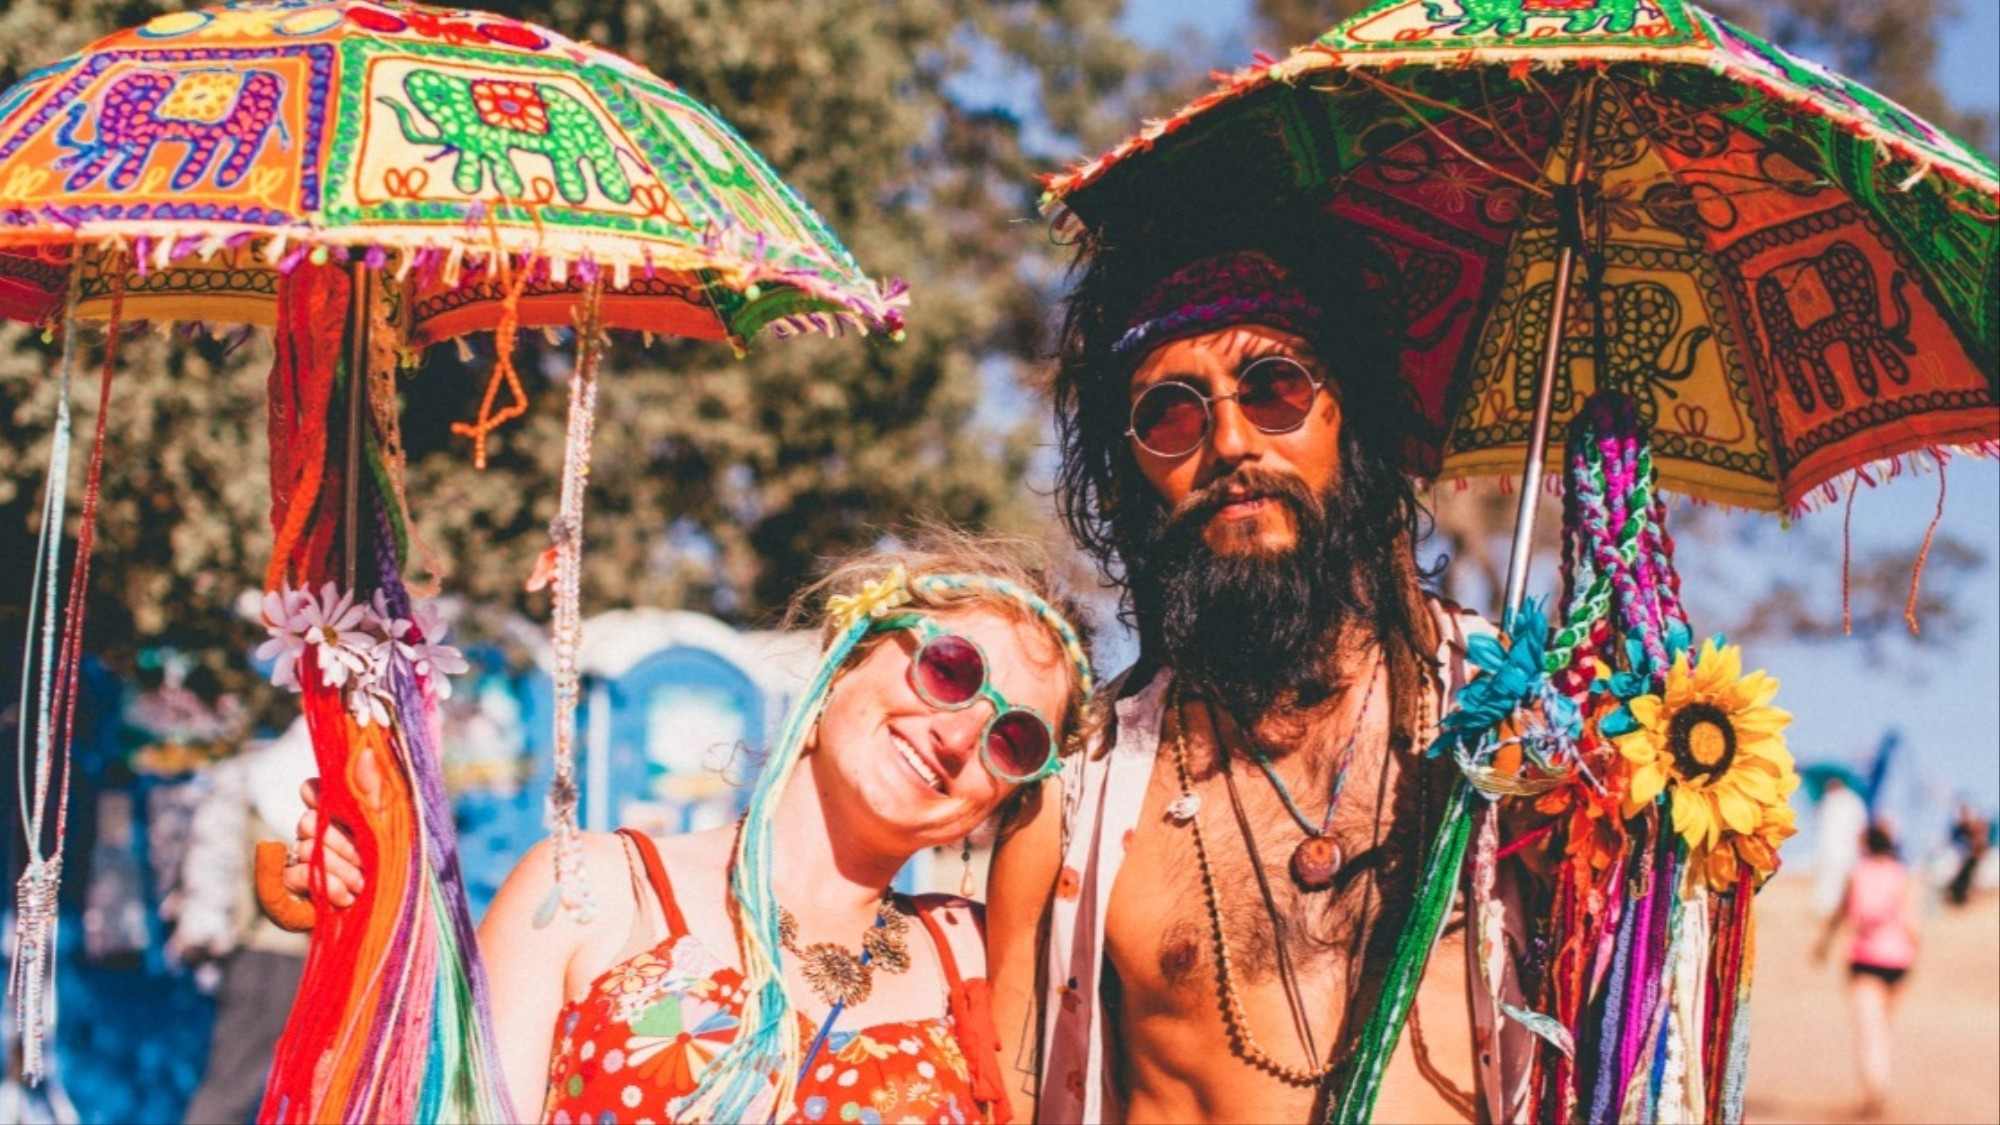 we-asked-the-hippies-of-lightning-in-a-bottle-what-it-means-to-be-a-hippie-1464803352.jpg?crop=0